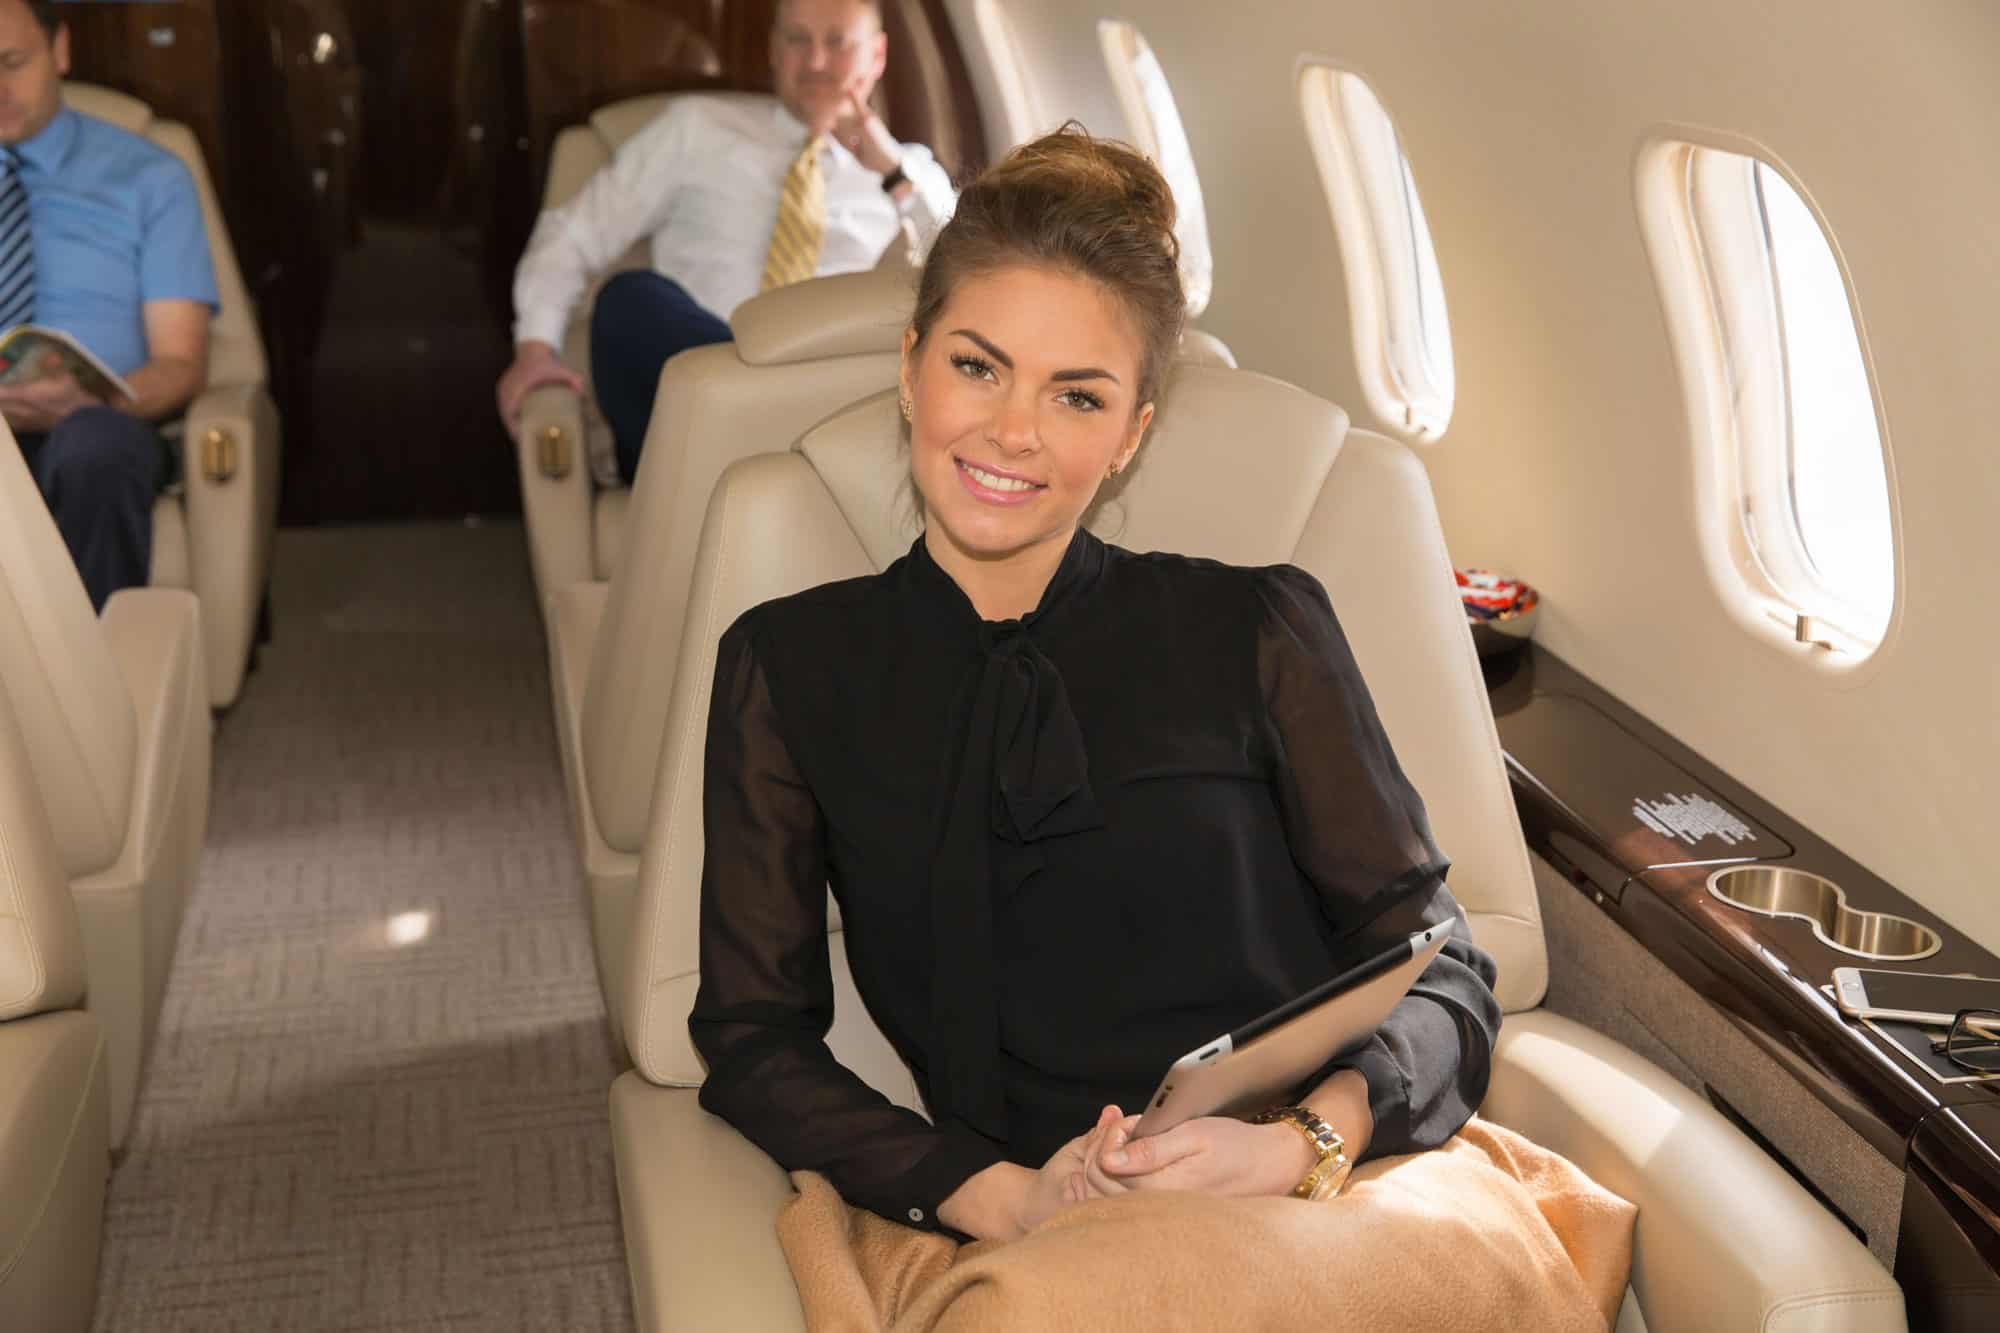 Passengers relaxed in a private jet arranged by a broker